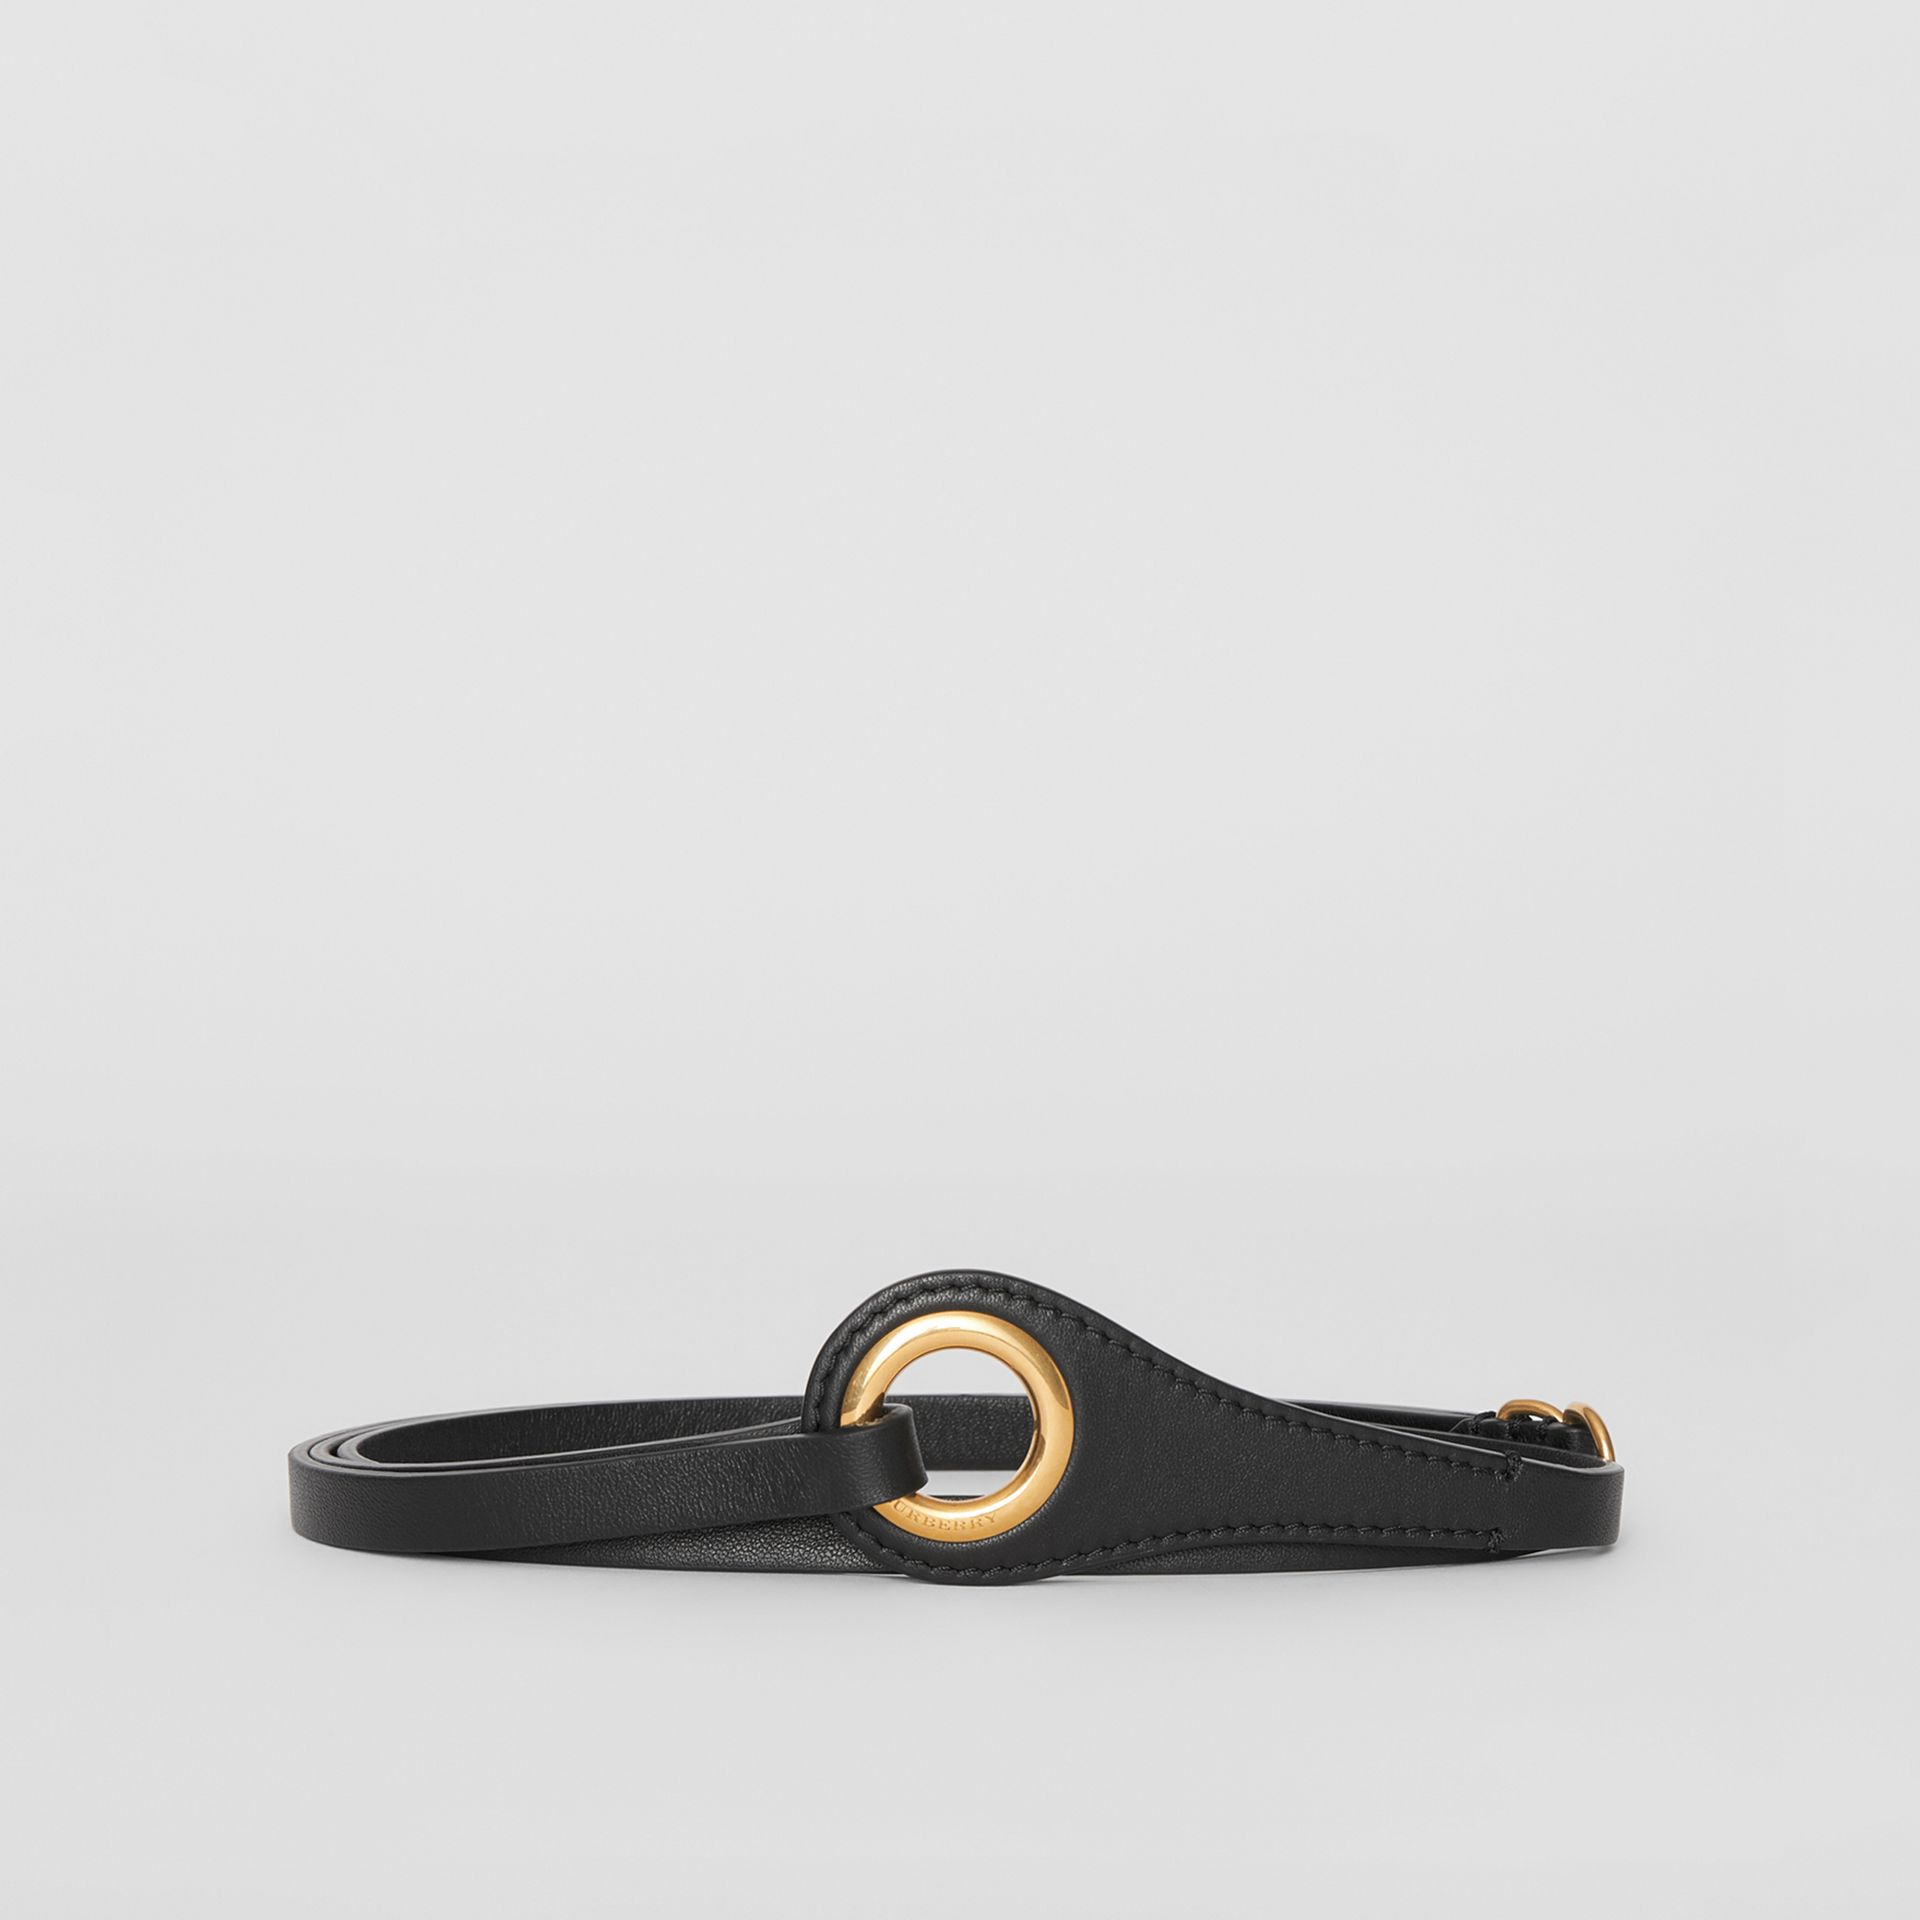 Grommet Detail Lambskin Belt in Black - Women | Burberry - gallery image 3